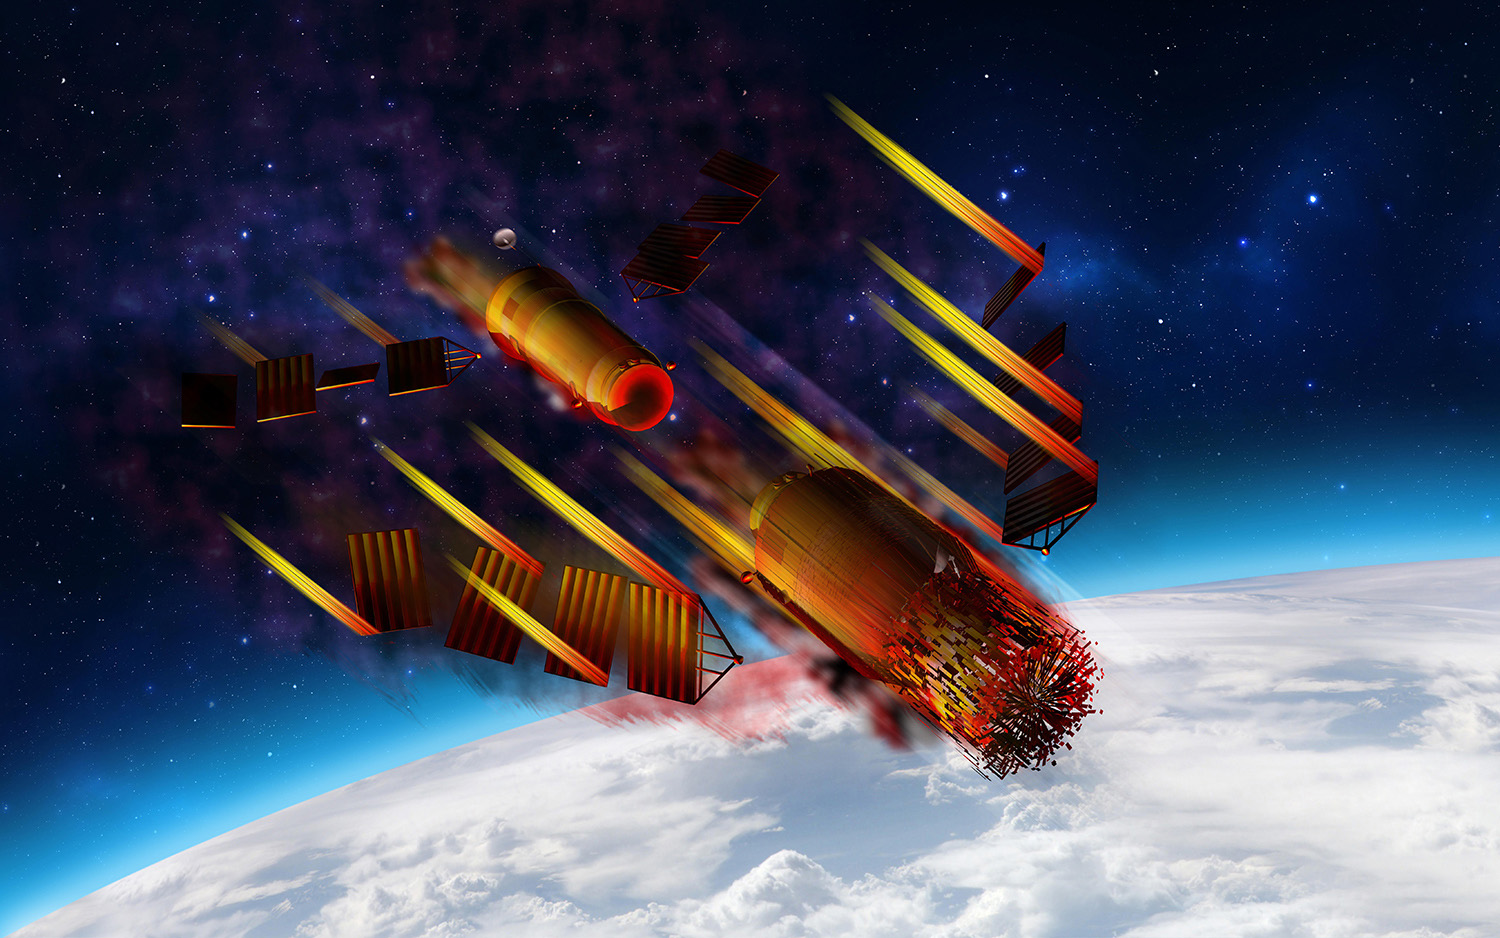 Farewell, Tiangong 1: Chinese Space Station Meets Fiery Doom Over